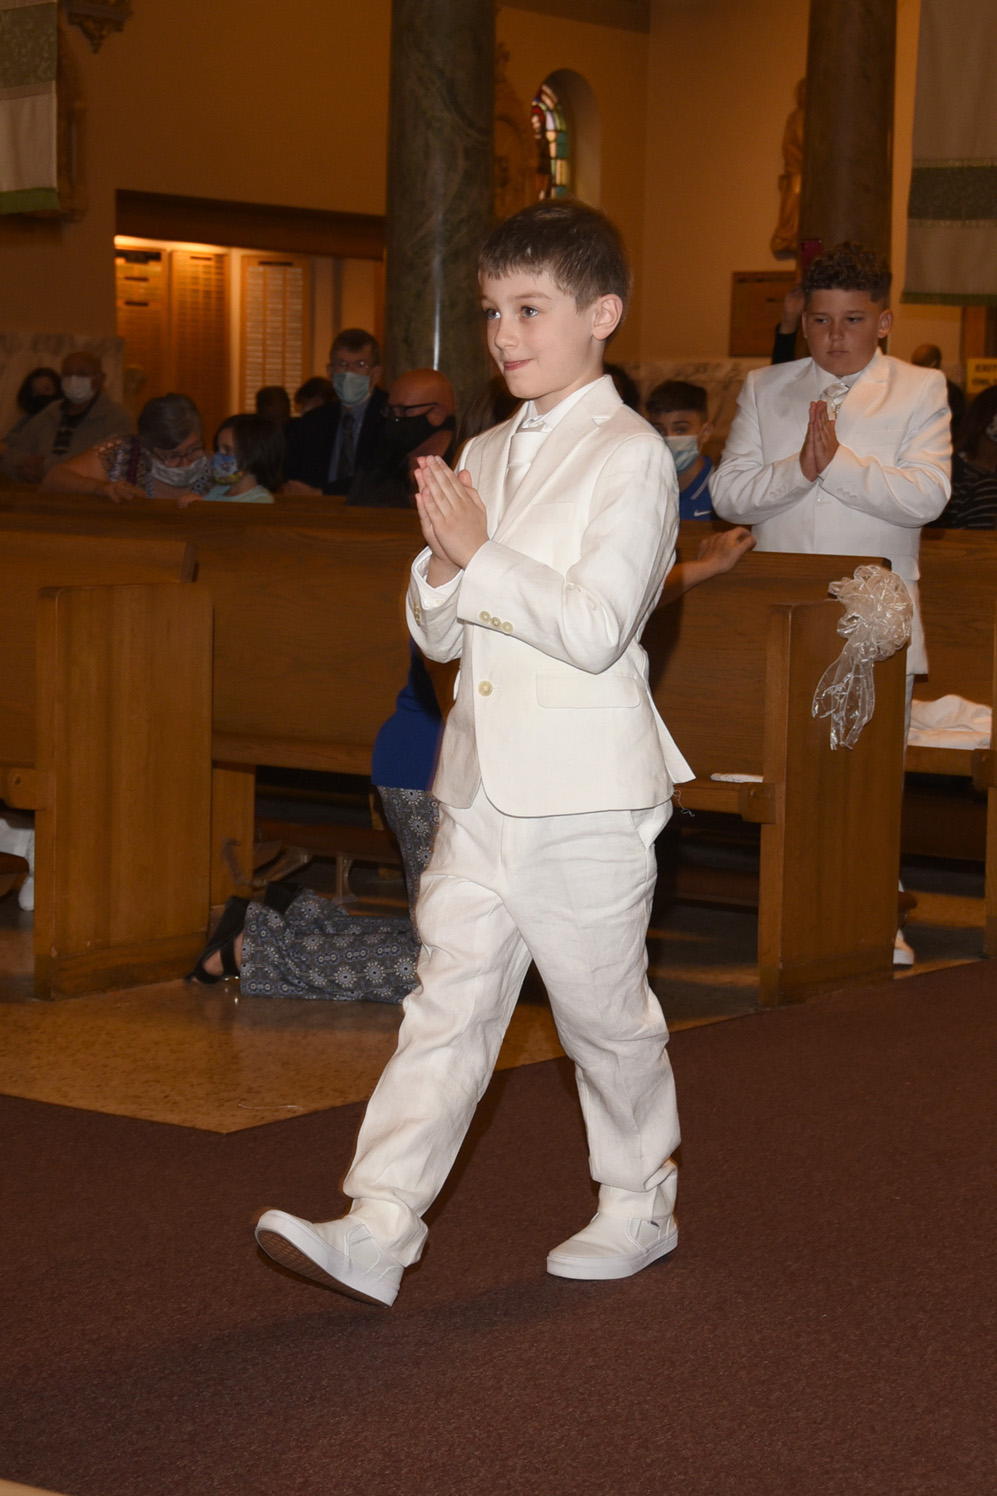 FIRST-COMMUNION-MAY-15-2021-10011010